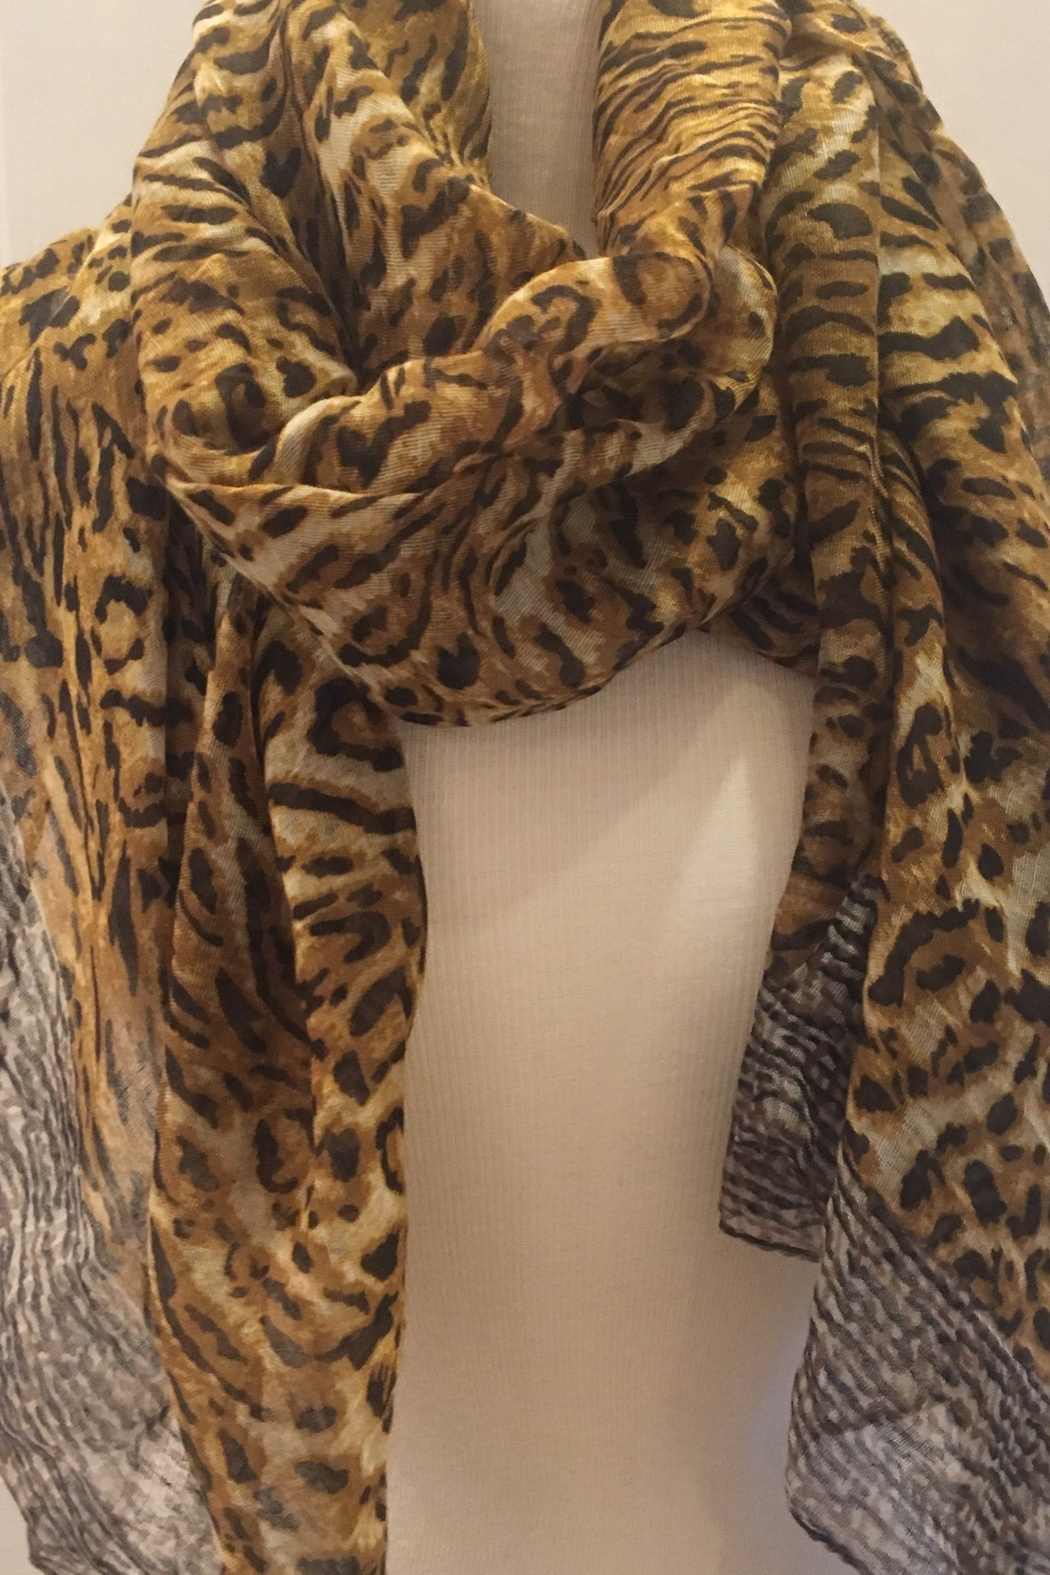 deannas animal print scarf - Main Image